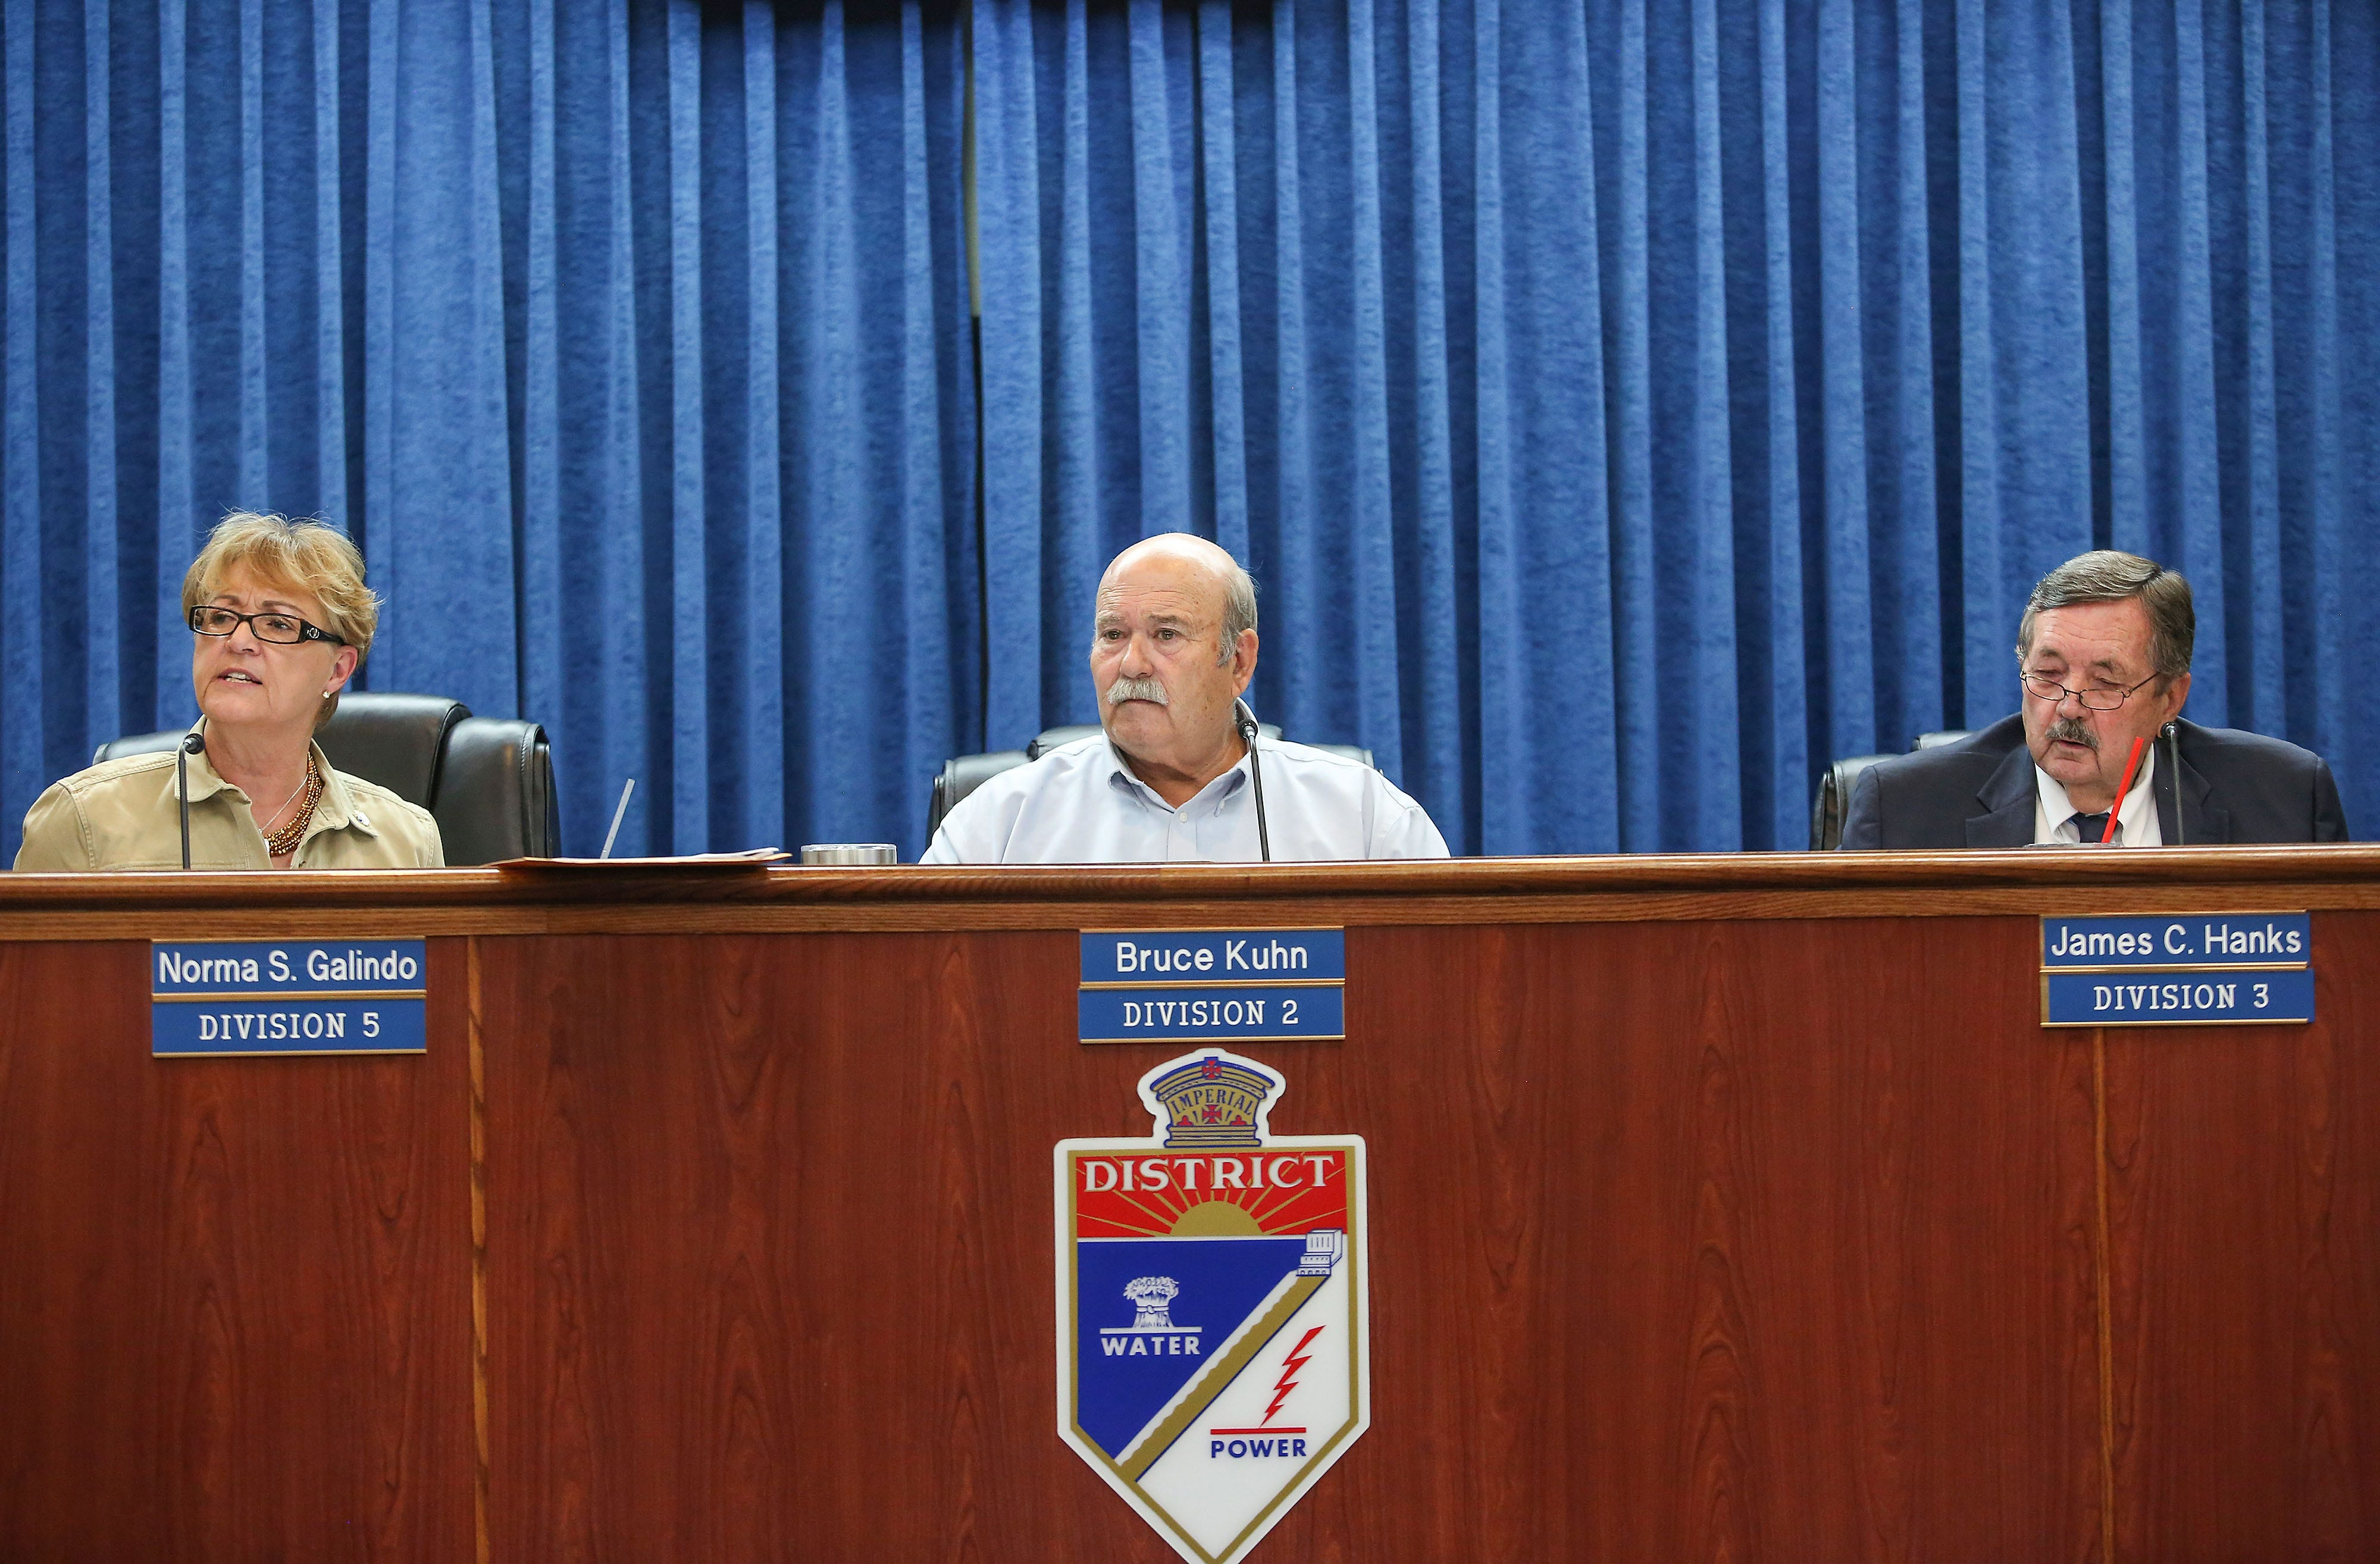 From left: Imperial Irrigation District board members Norma Sierra Galindo, Bruce Kuhn and Jim Hanks, seen at the July 18, 2017 board meeting.